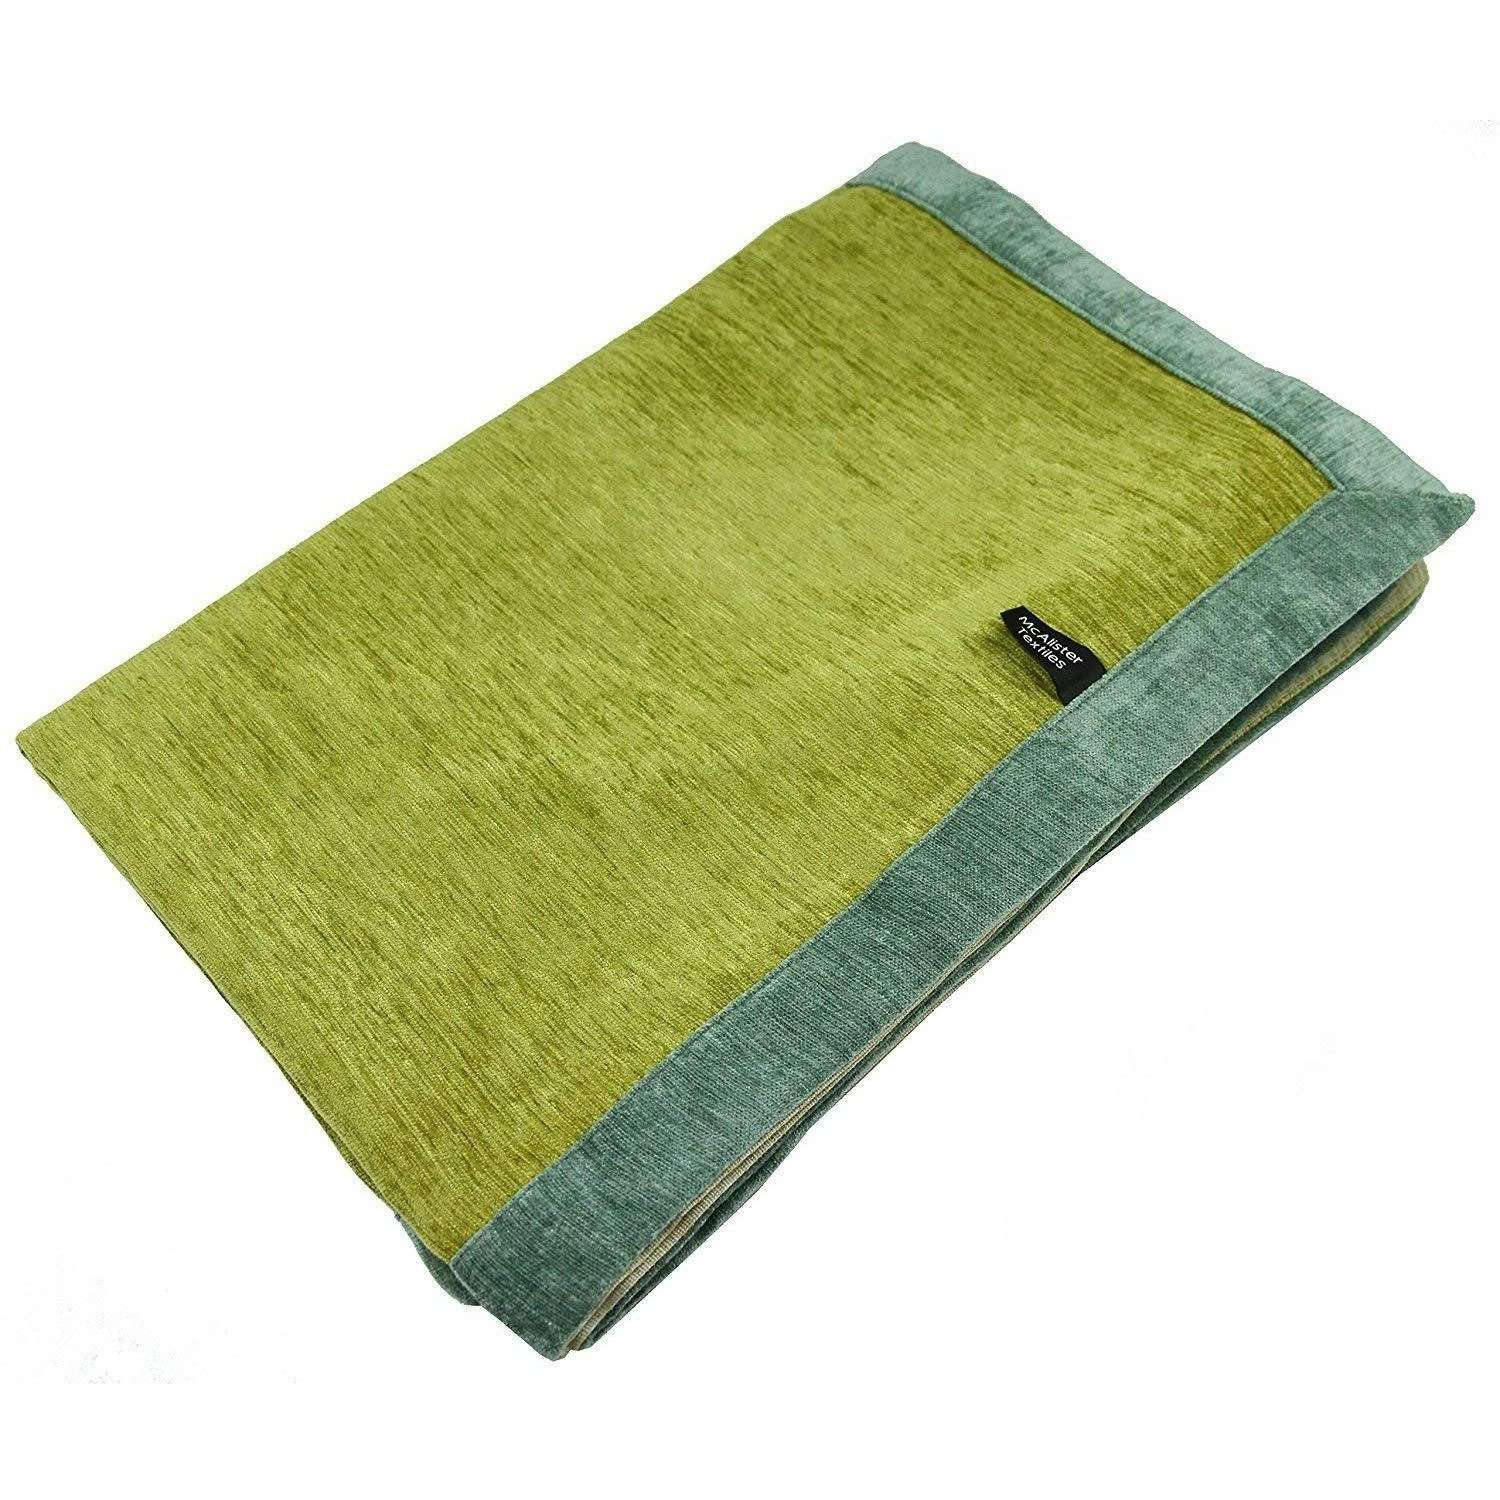 McAlister Textiles Alston Chenille Green + Duck Egg Blue Throws & Runners Throws and Runners Regular (130cm x 200cm)